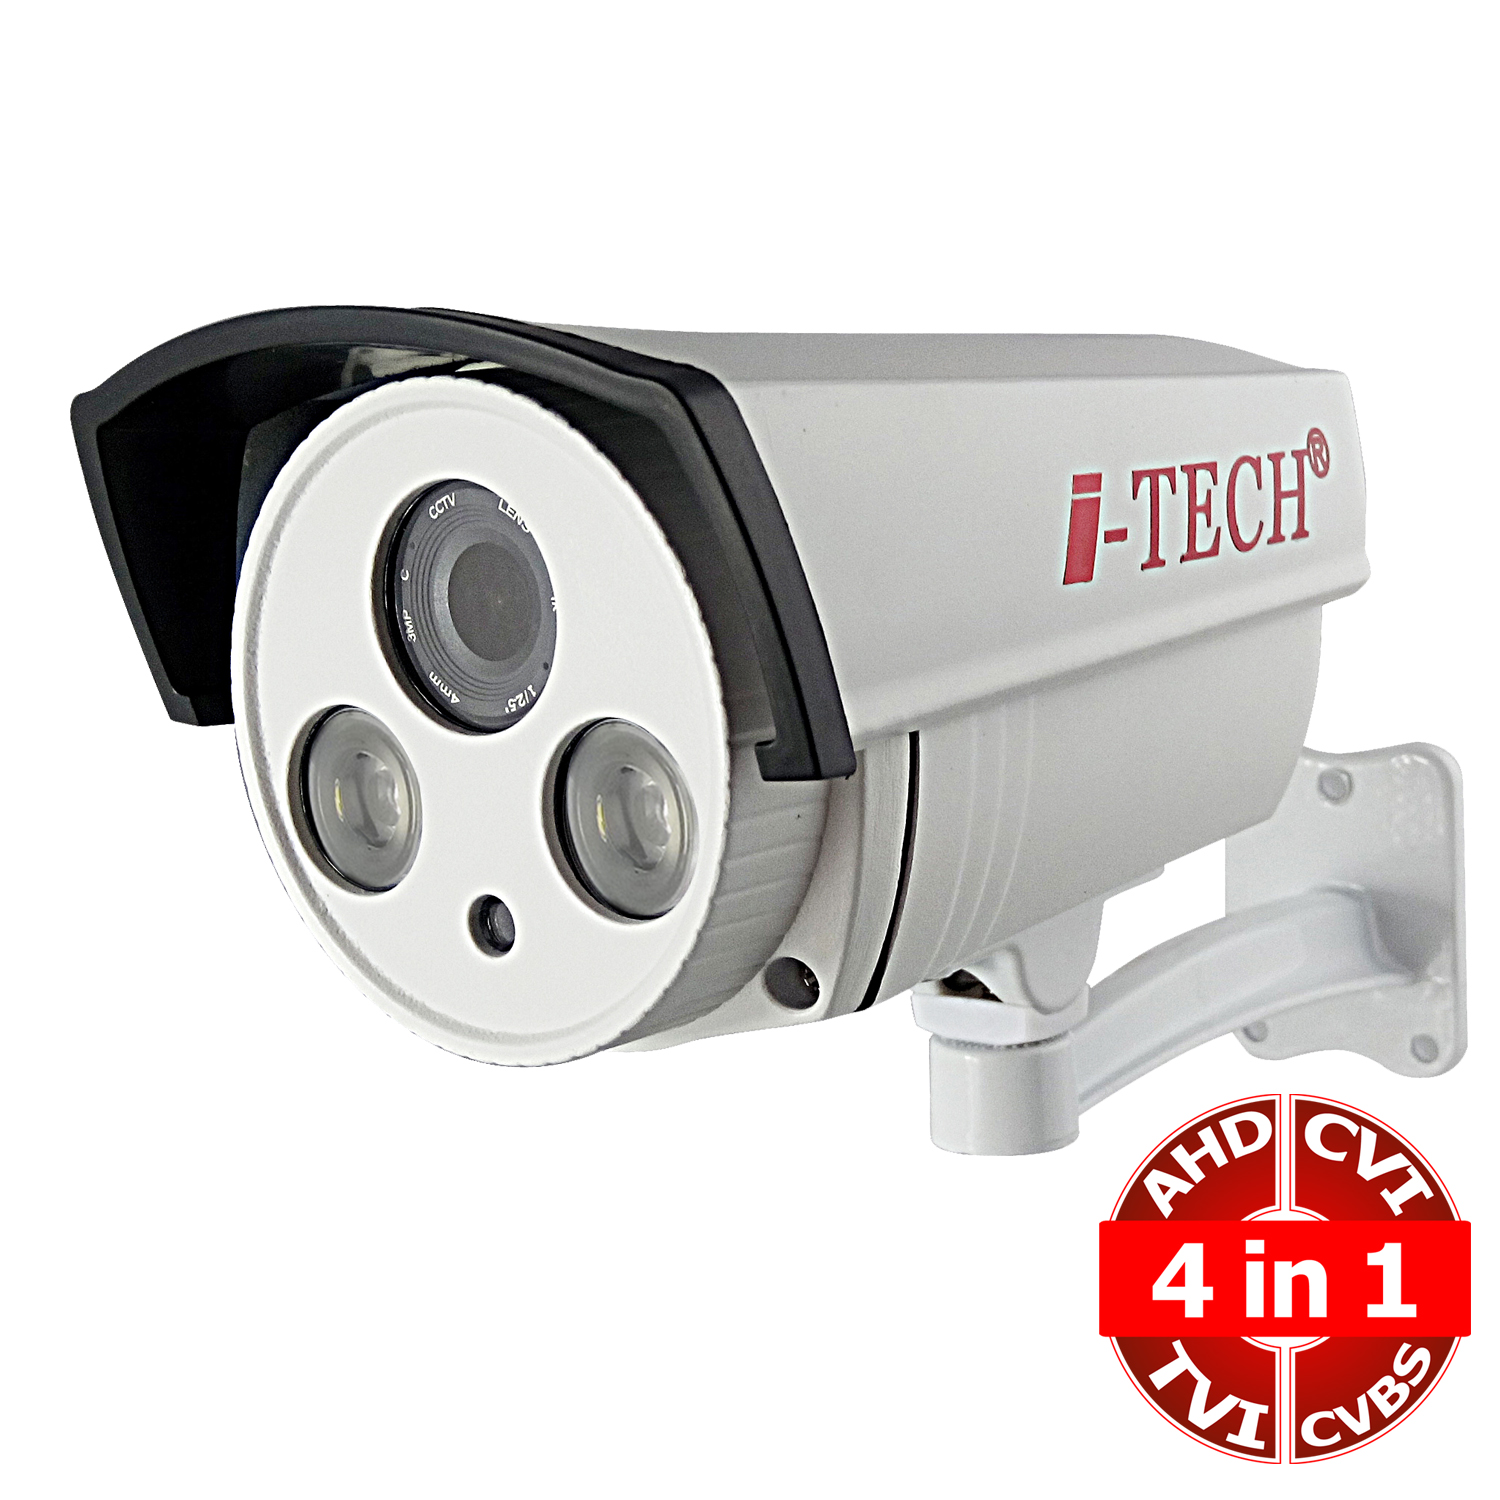 Camera AHD 4 in 1 iTech-X2VI